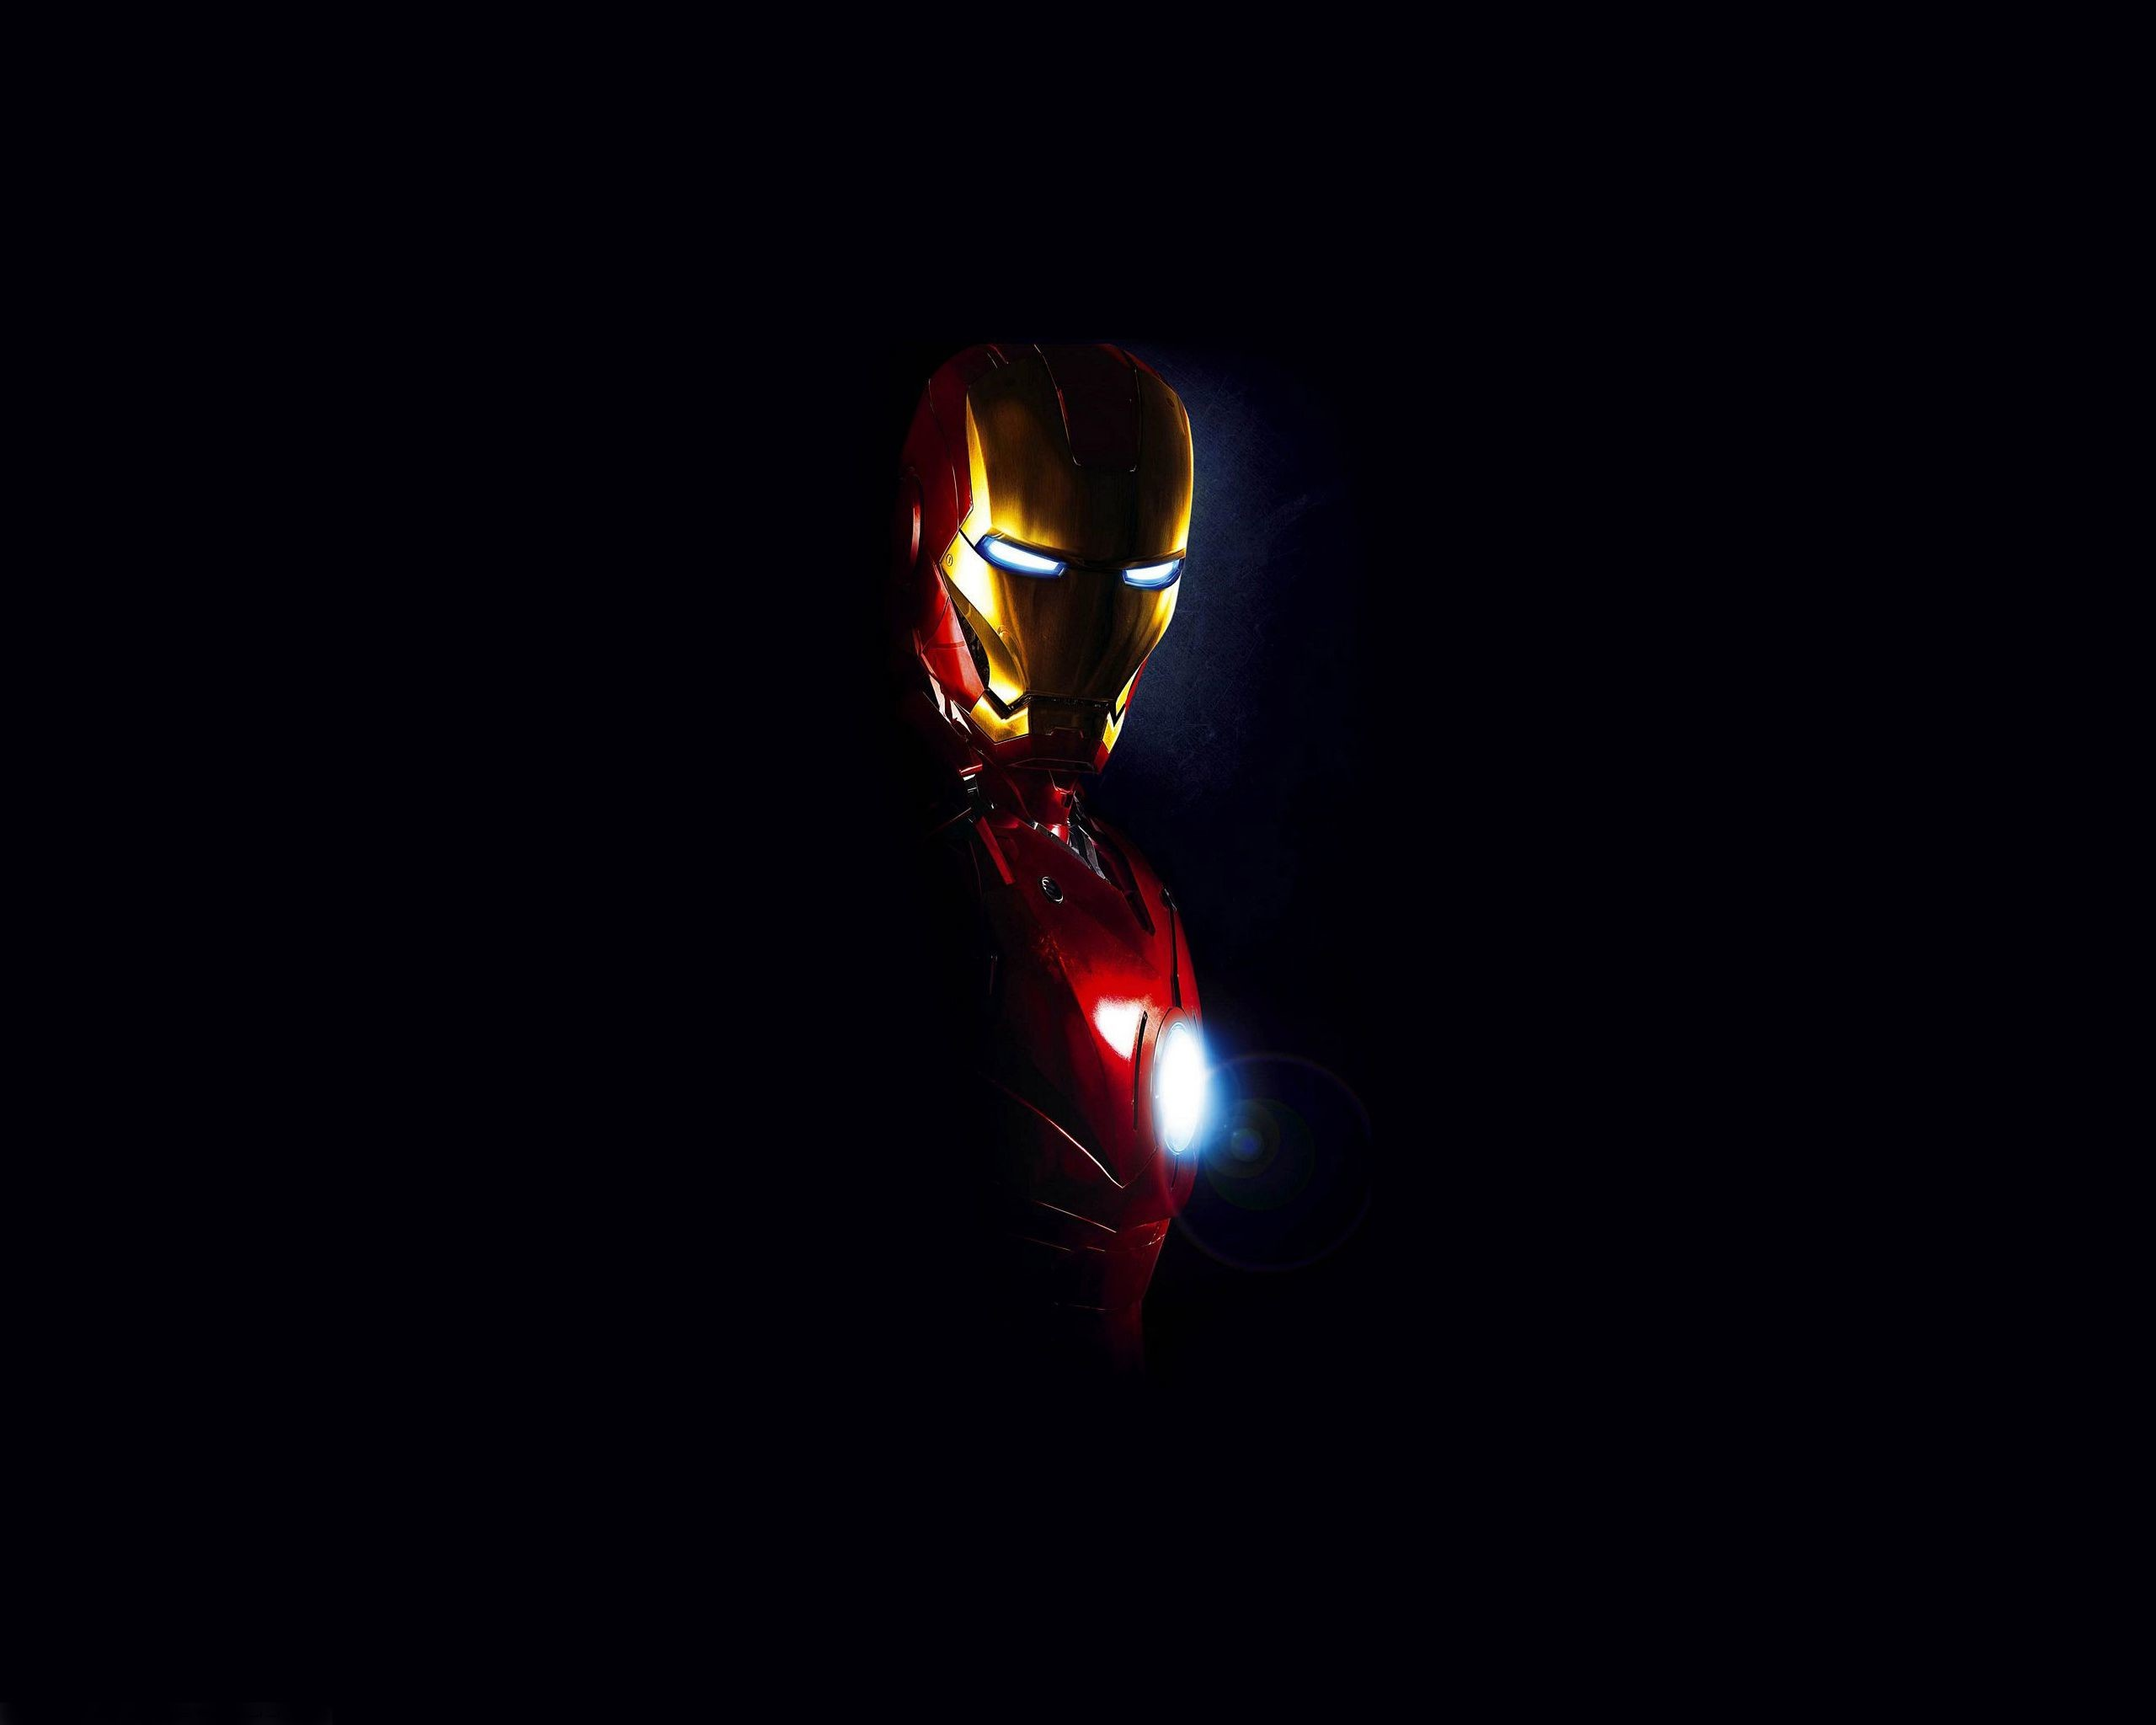 2560x2048 Cool Picture of Iron Man Photo with Dark Background | HD .